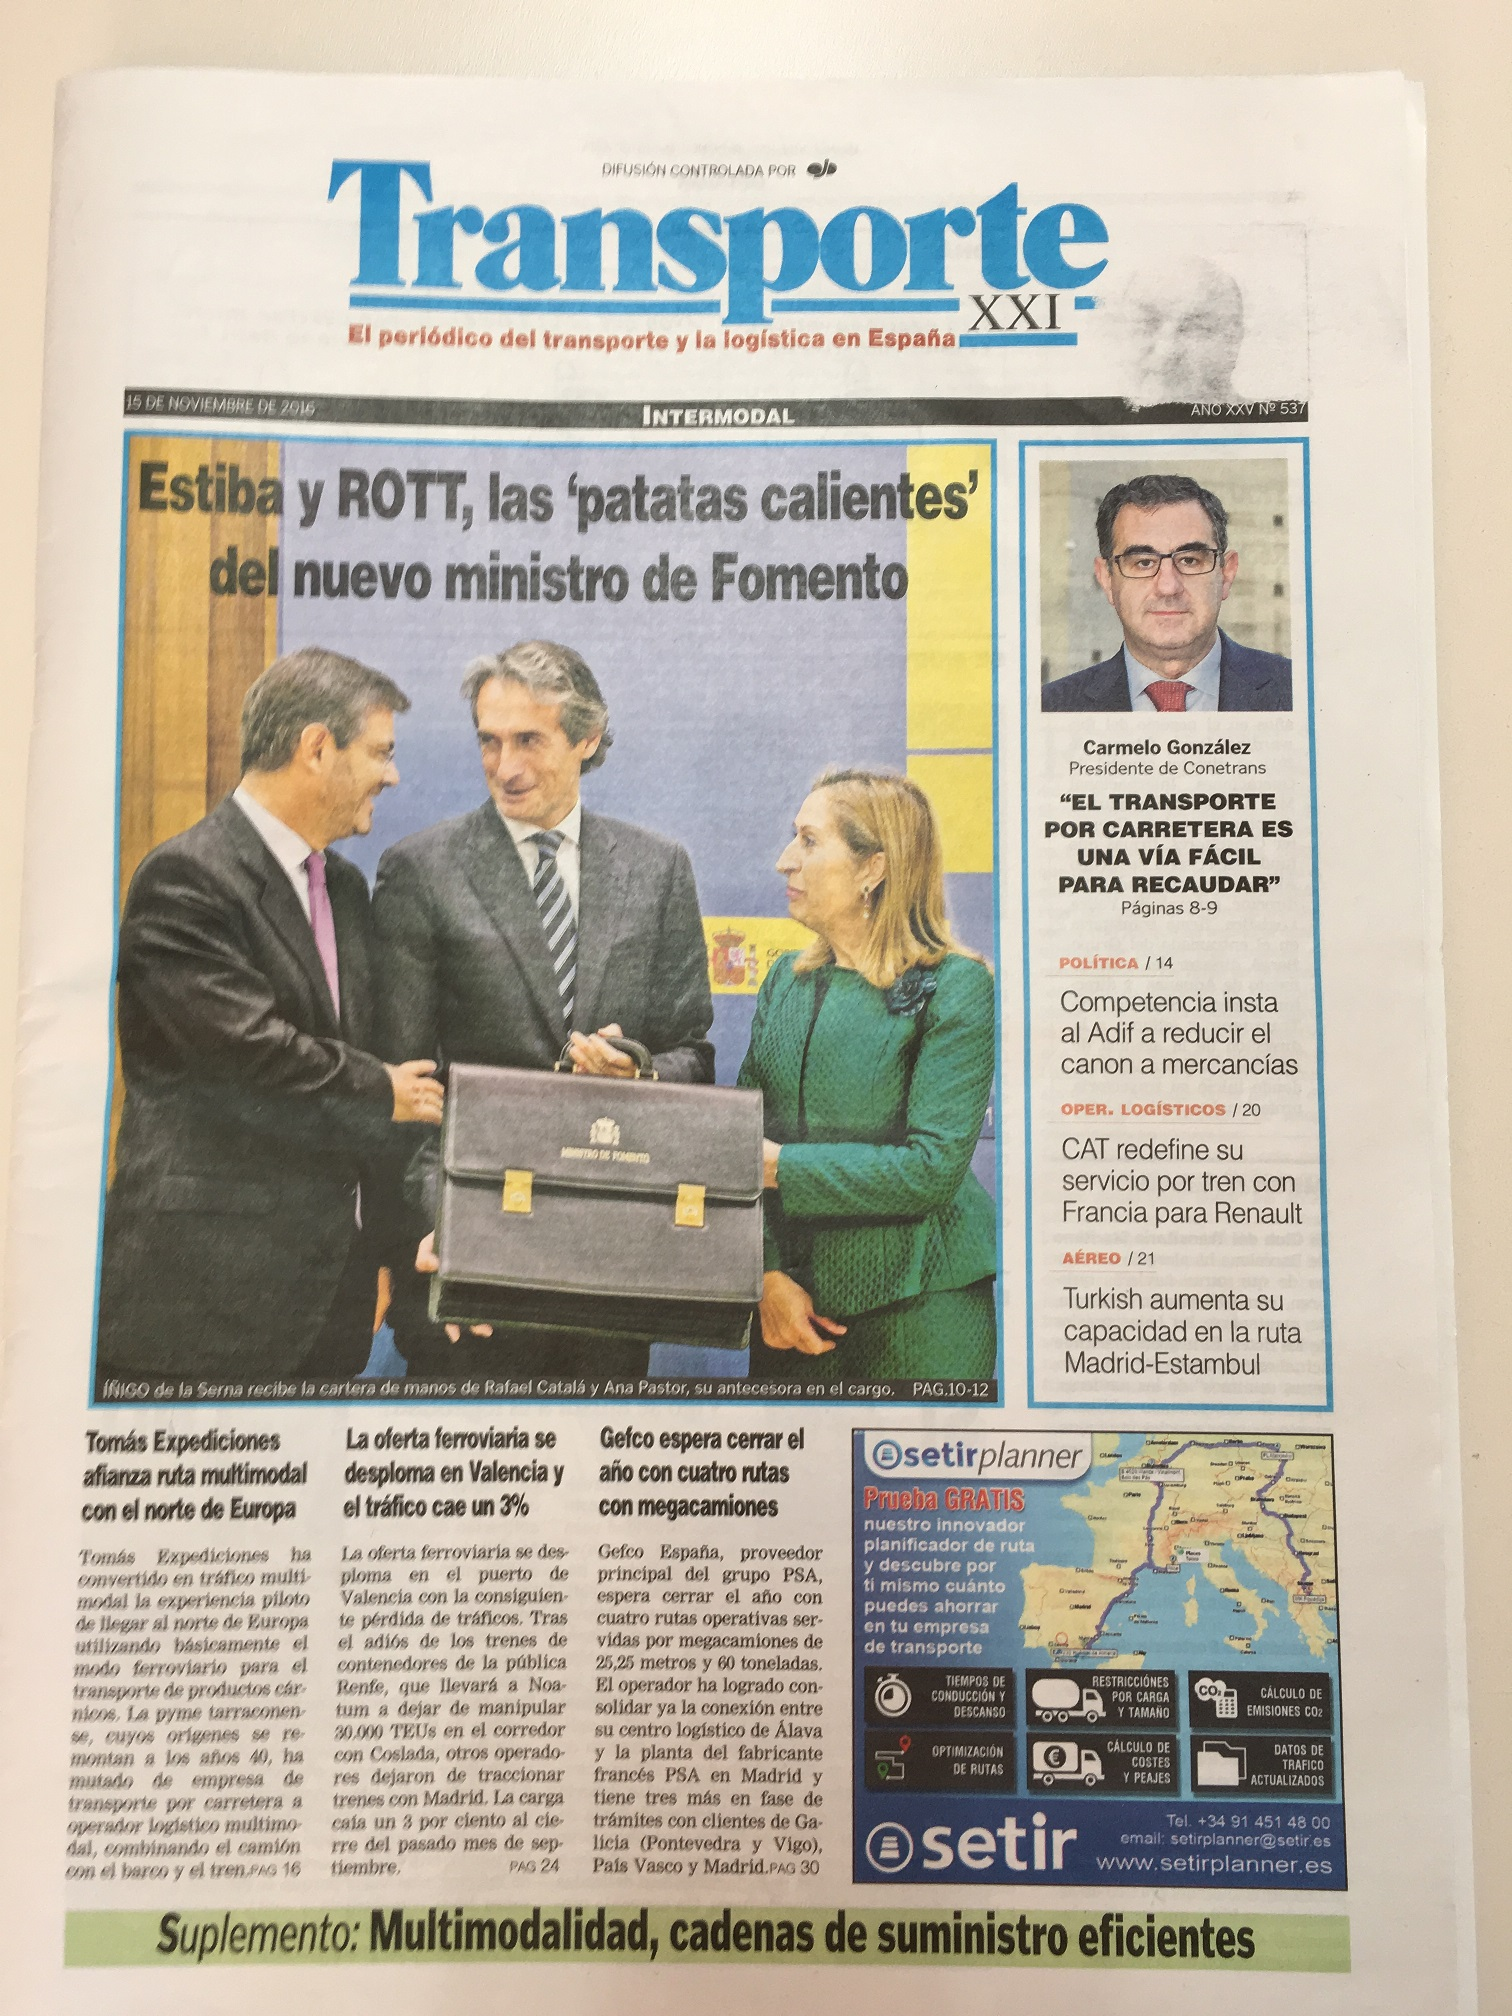 The newspaper Transporte XXI talks about the multimodal activity of Tomas Expediciones.